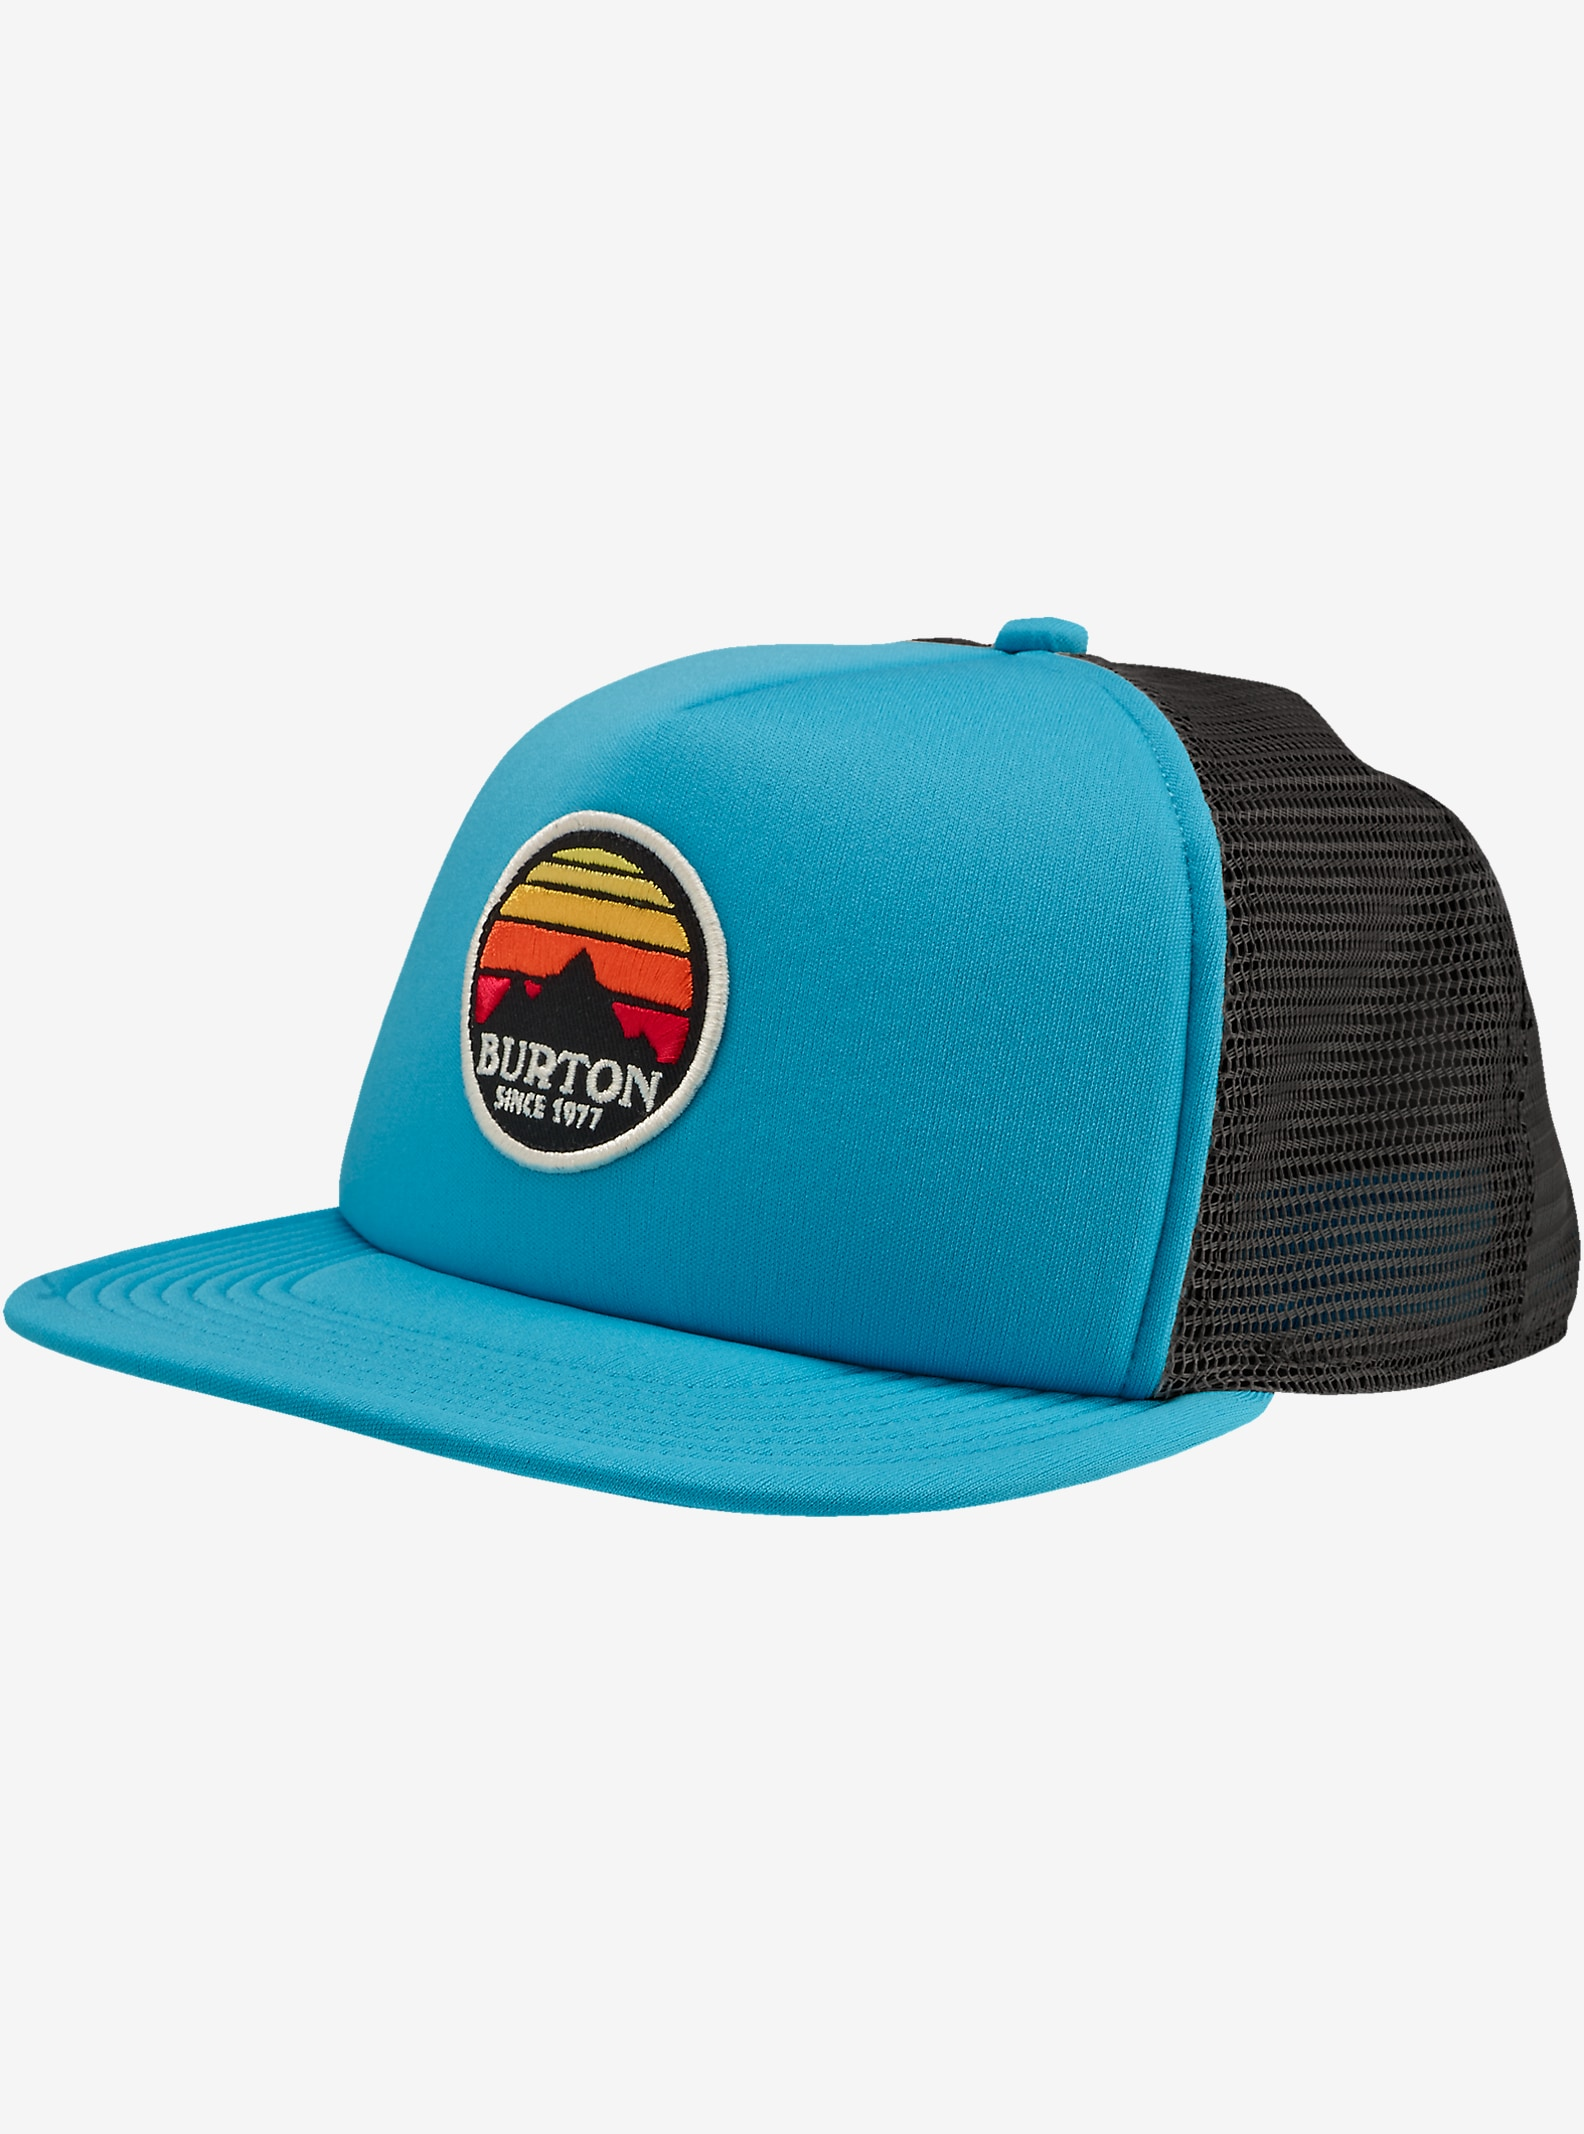 Burton Sunset Snapback Trucker Hat shown in Caneel Bay